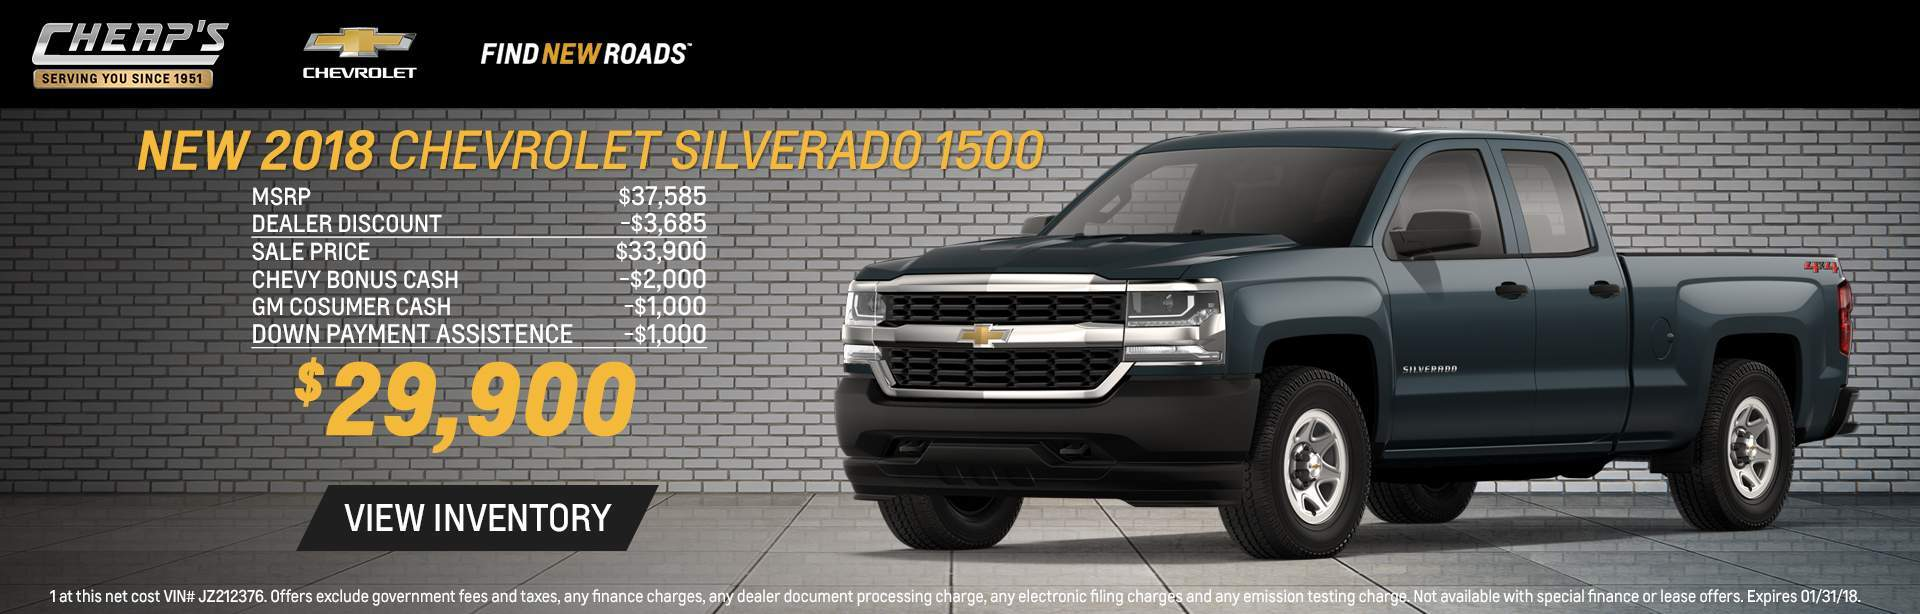 2018 Chevrolet Silverado 1500 of Cheap's Chevrolet